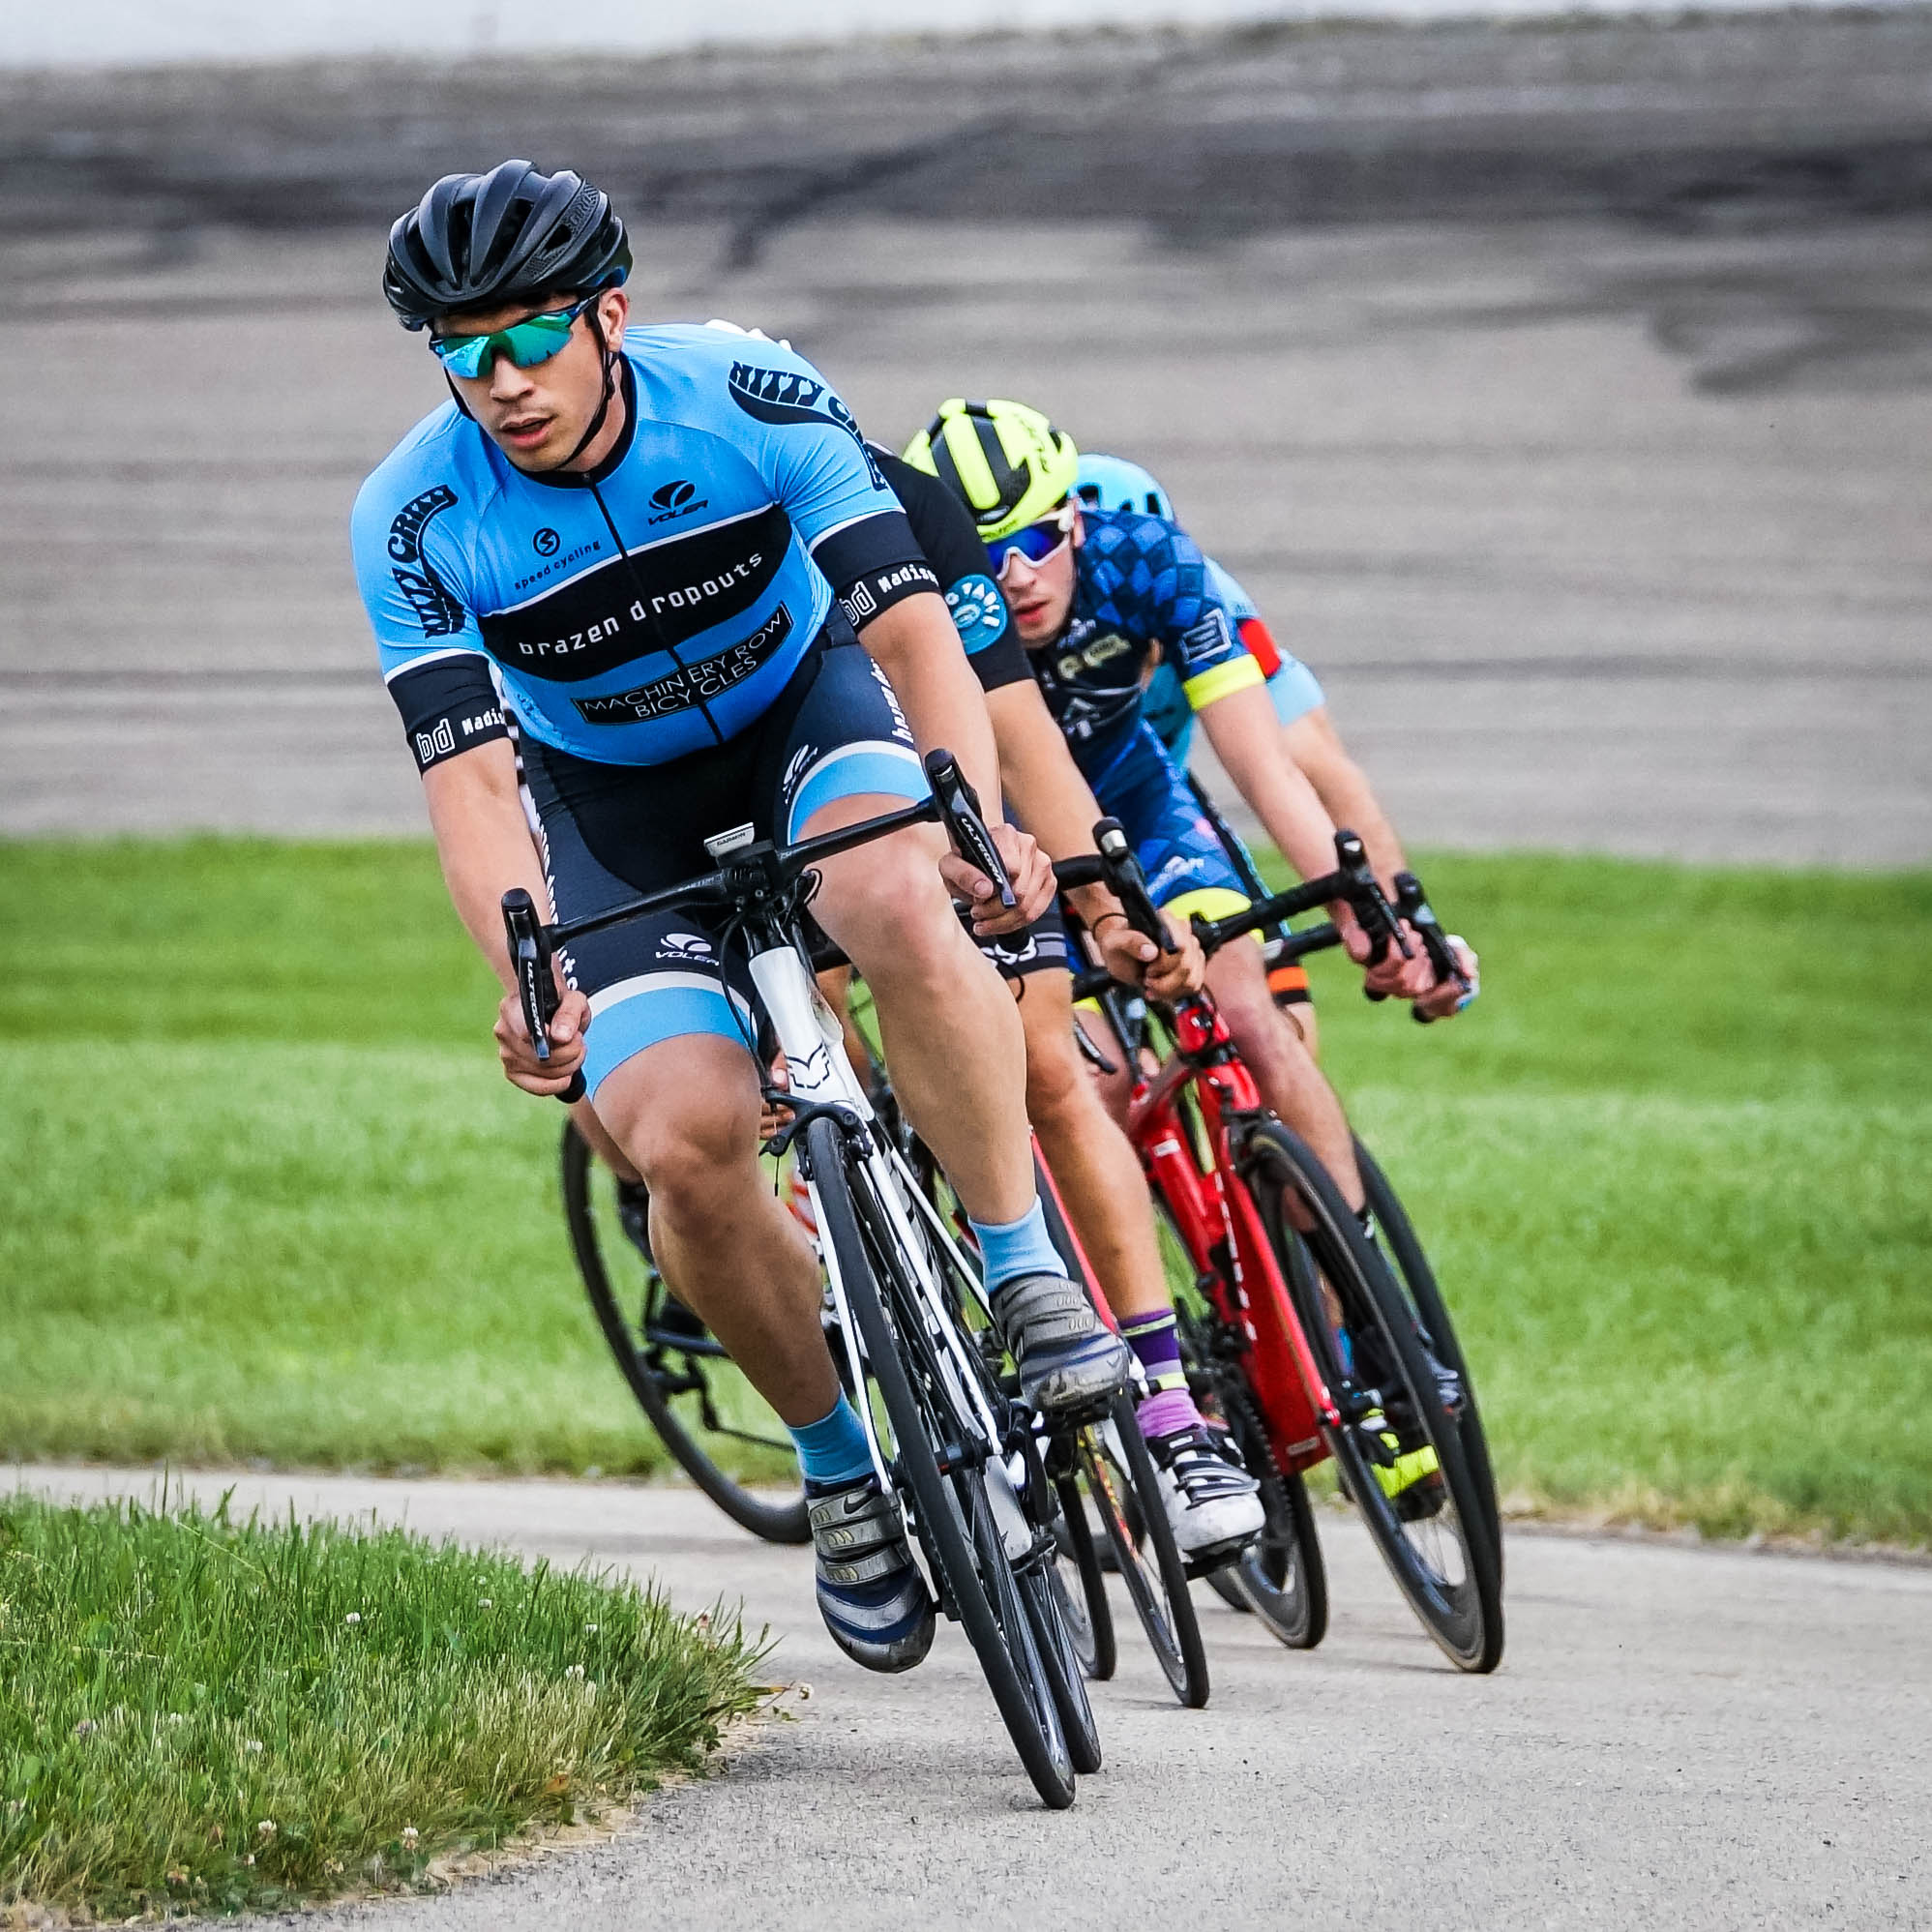 Madison Practice Crits at Madison International Speedway